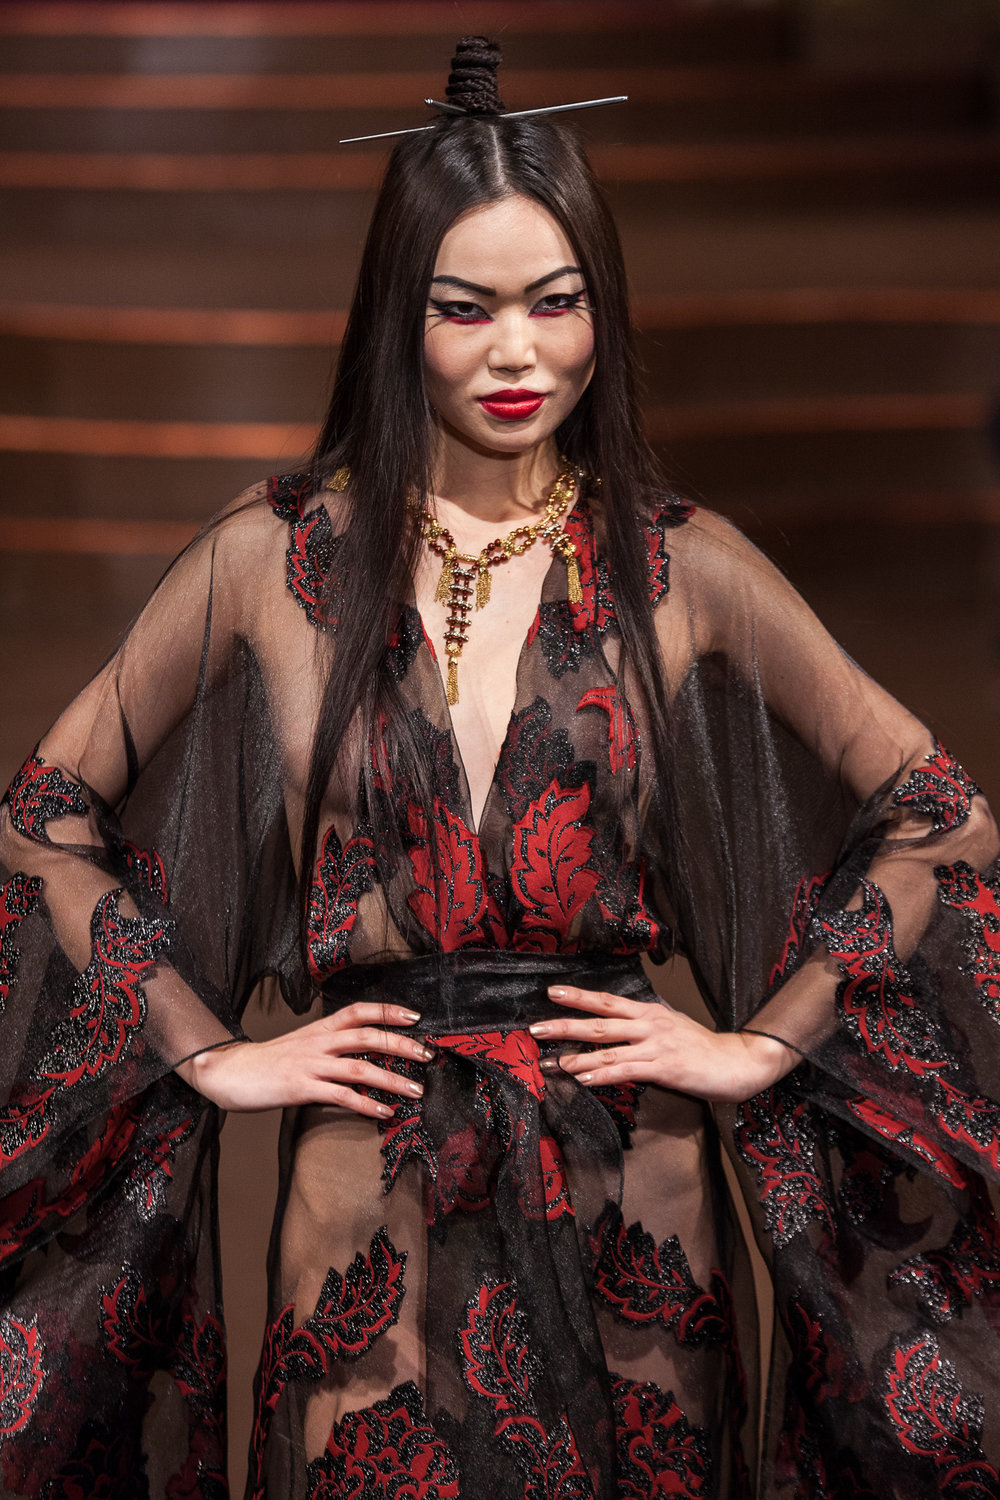 Stello exemplified how culture impacts the fashion industry - Models done up with edgy chopsticks in their hair and elaborate eye makeup strutted down the runway in designs that were definitely Asian-inspired.@stello